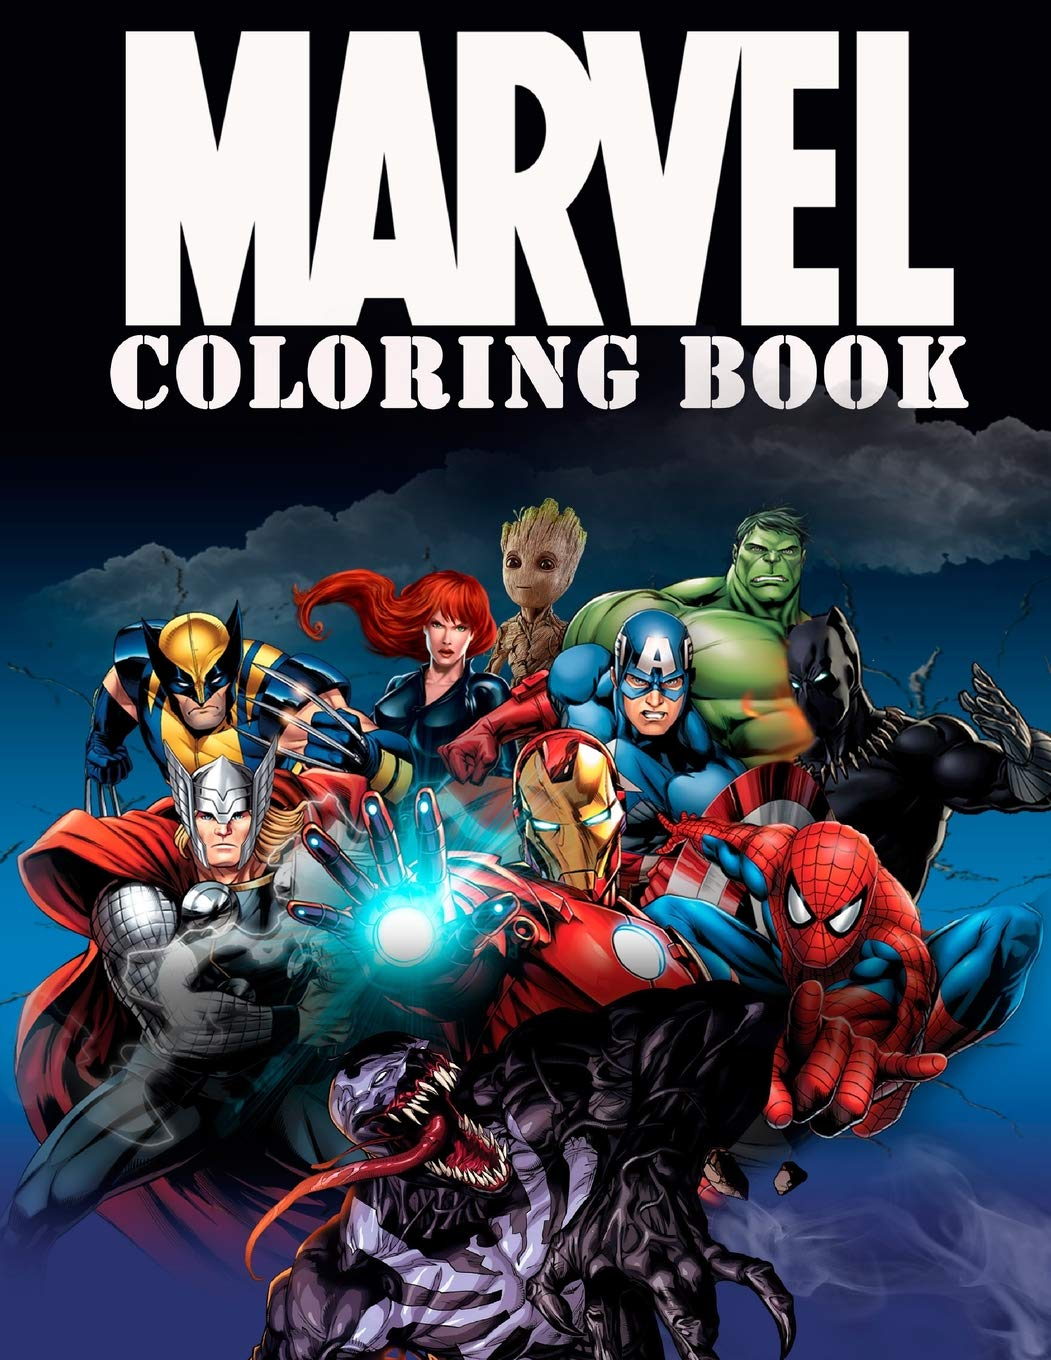 Amazon.com: Marvel Coloring Book: Super Heroes, Avangers, Spider-Man ...